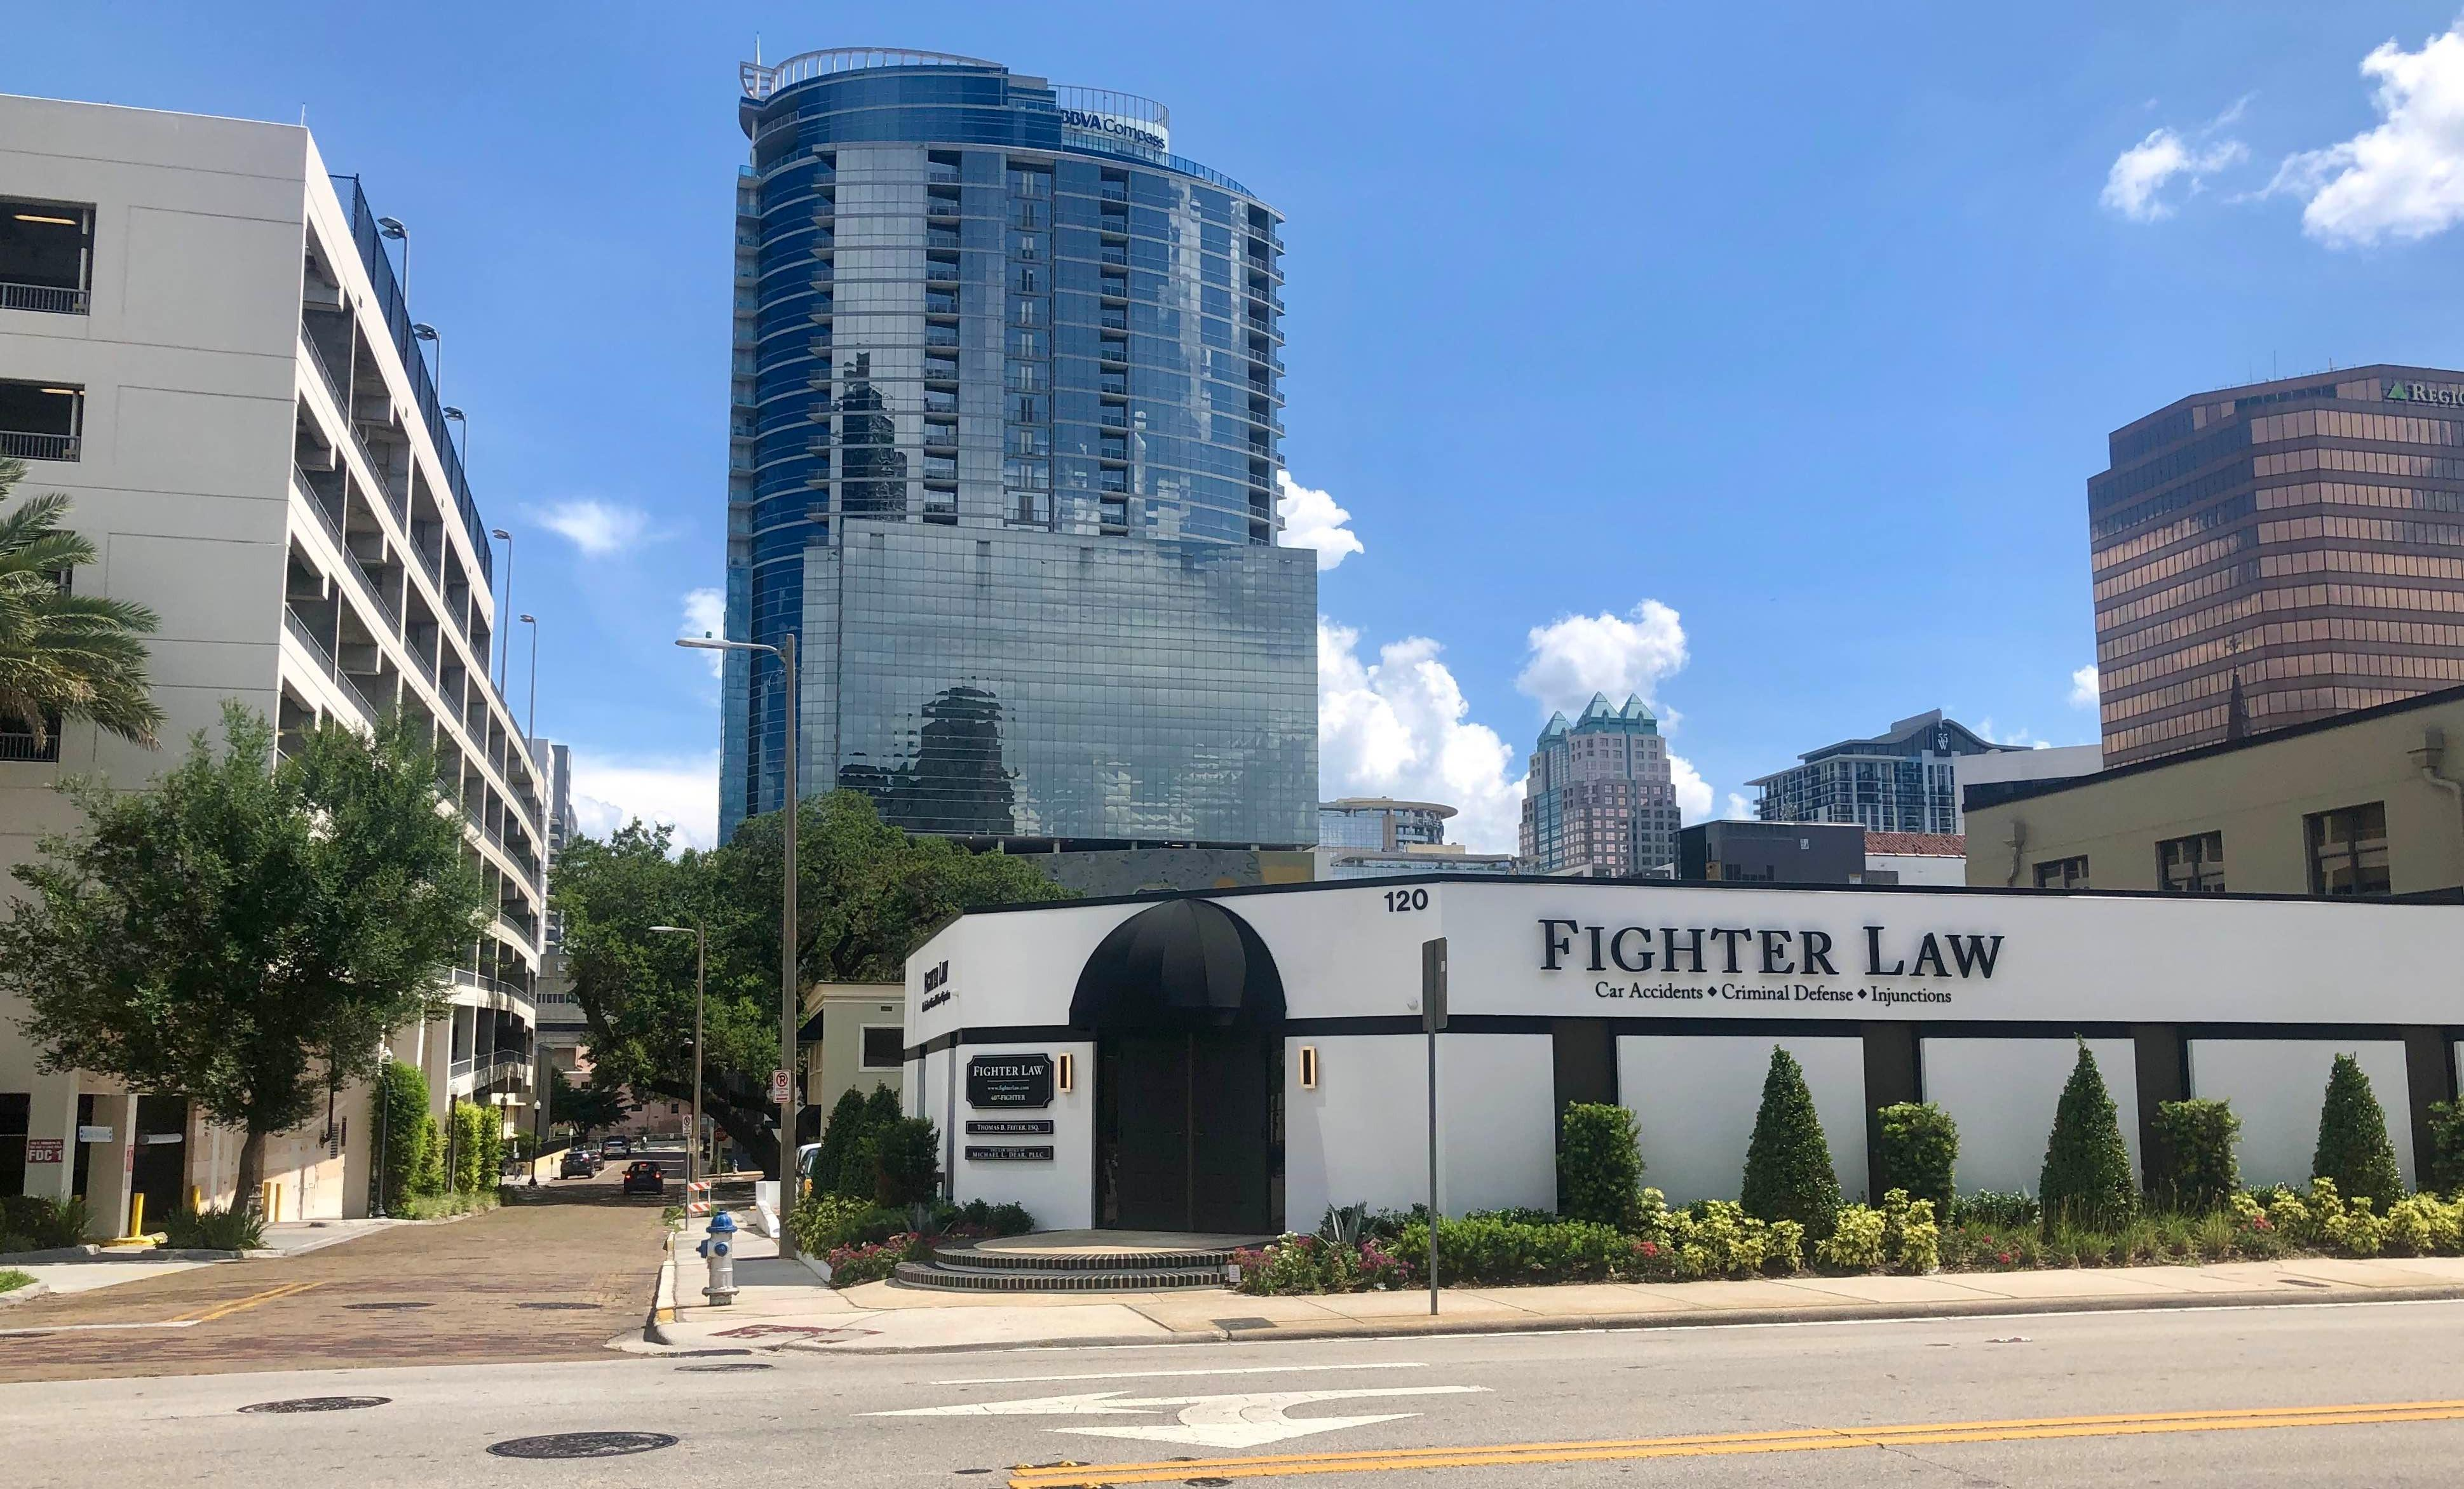 Fighter Law